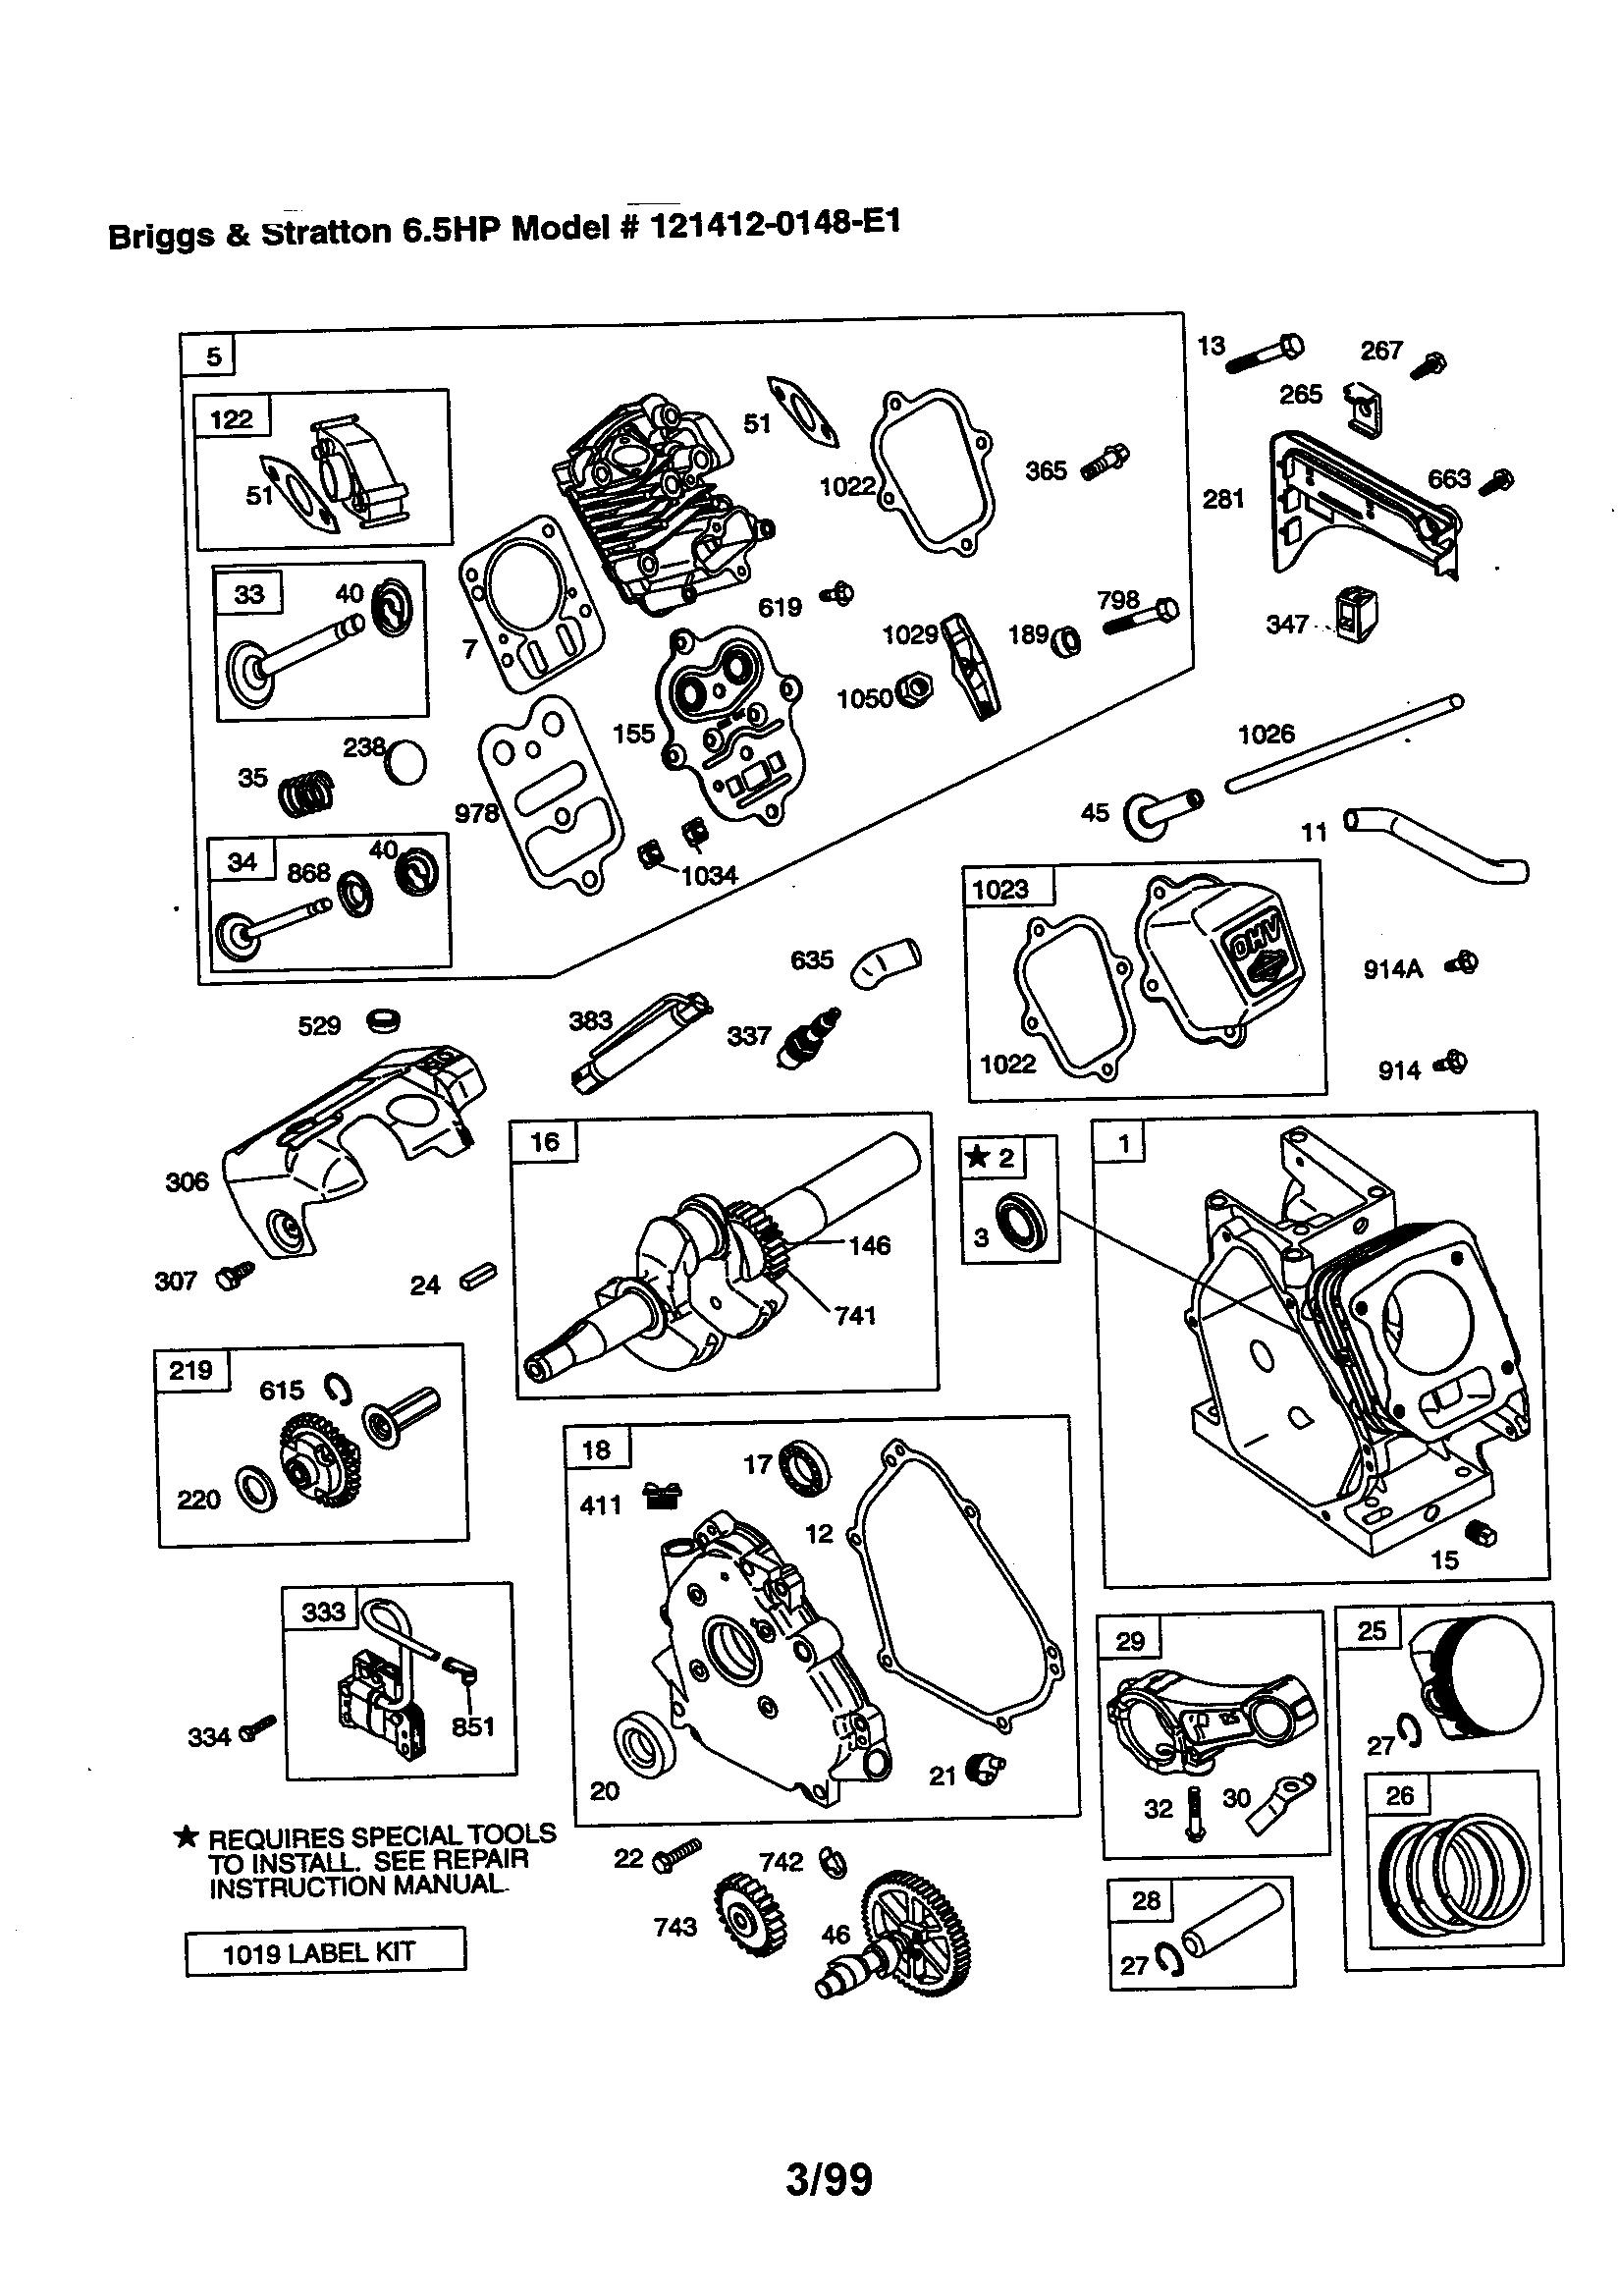 Briggs-Stratton model 121412-0148-E1 engine genuine parts